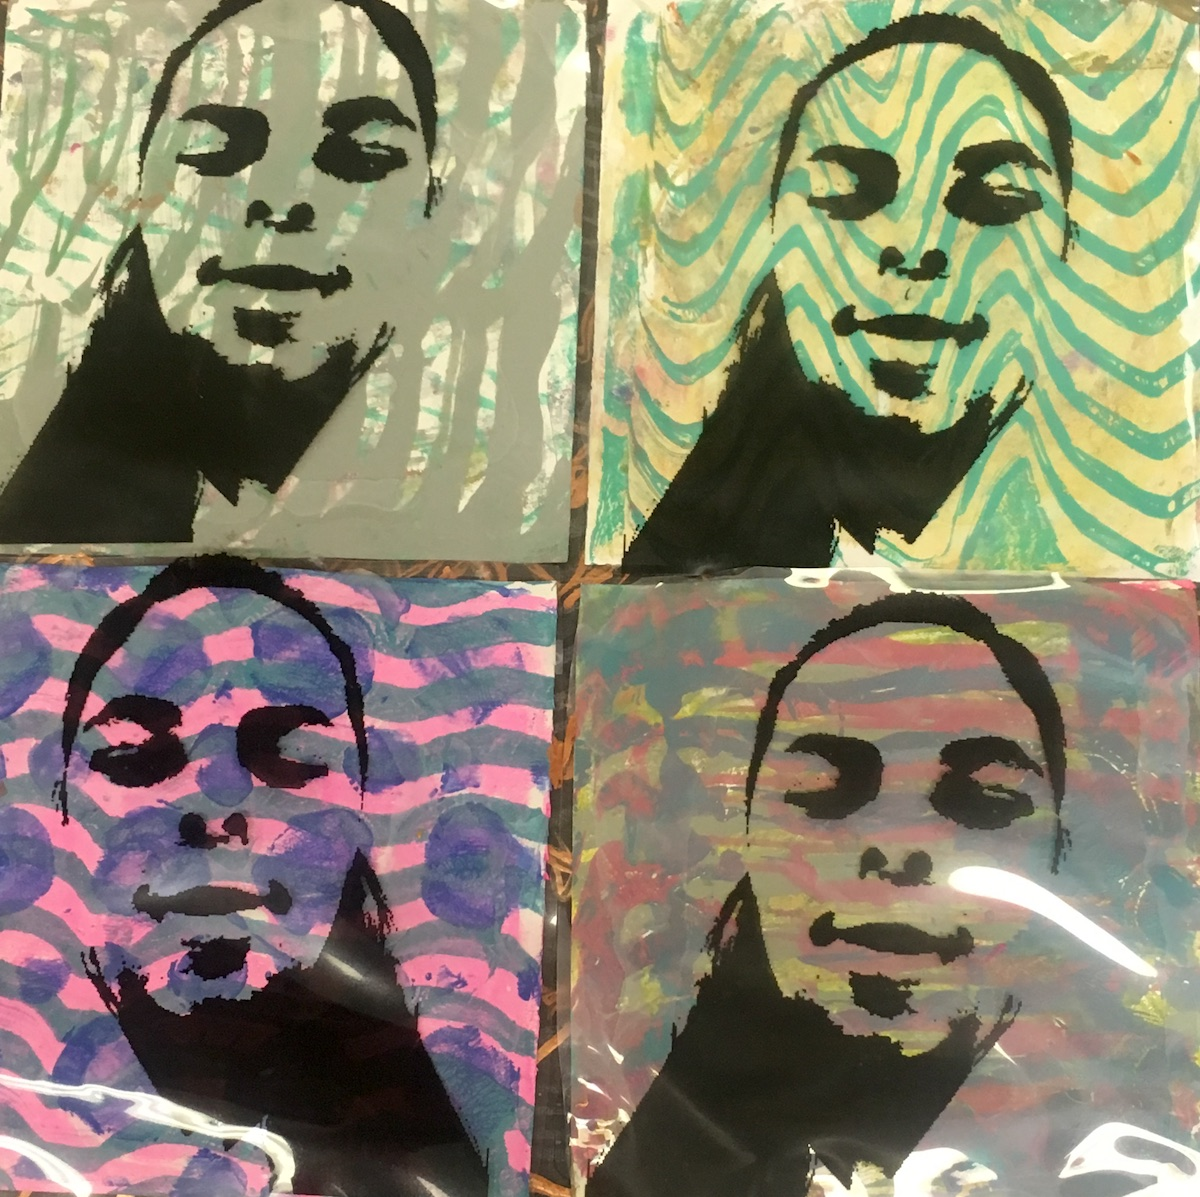 4 Concrete Ways To Modify Art Projects For Students With